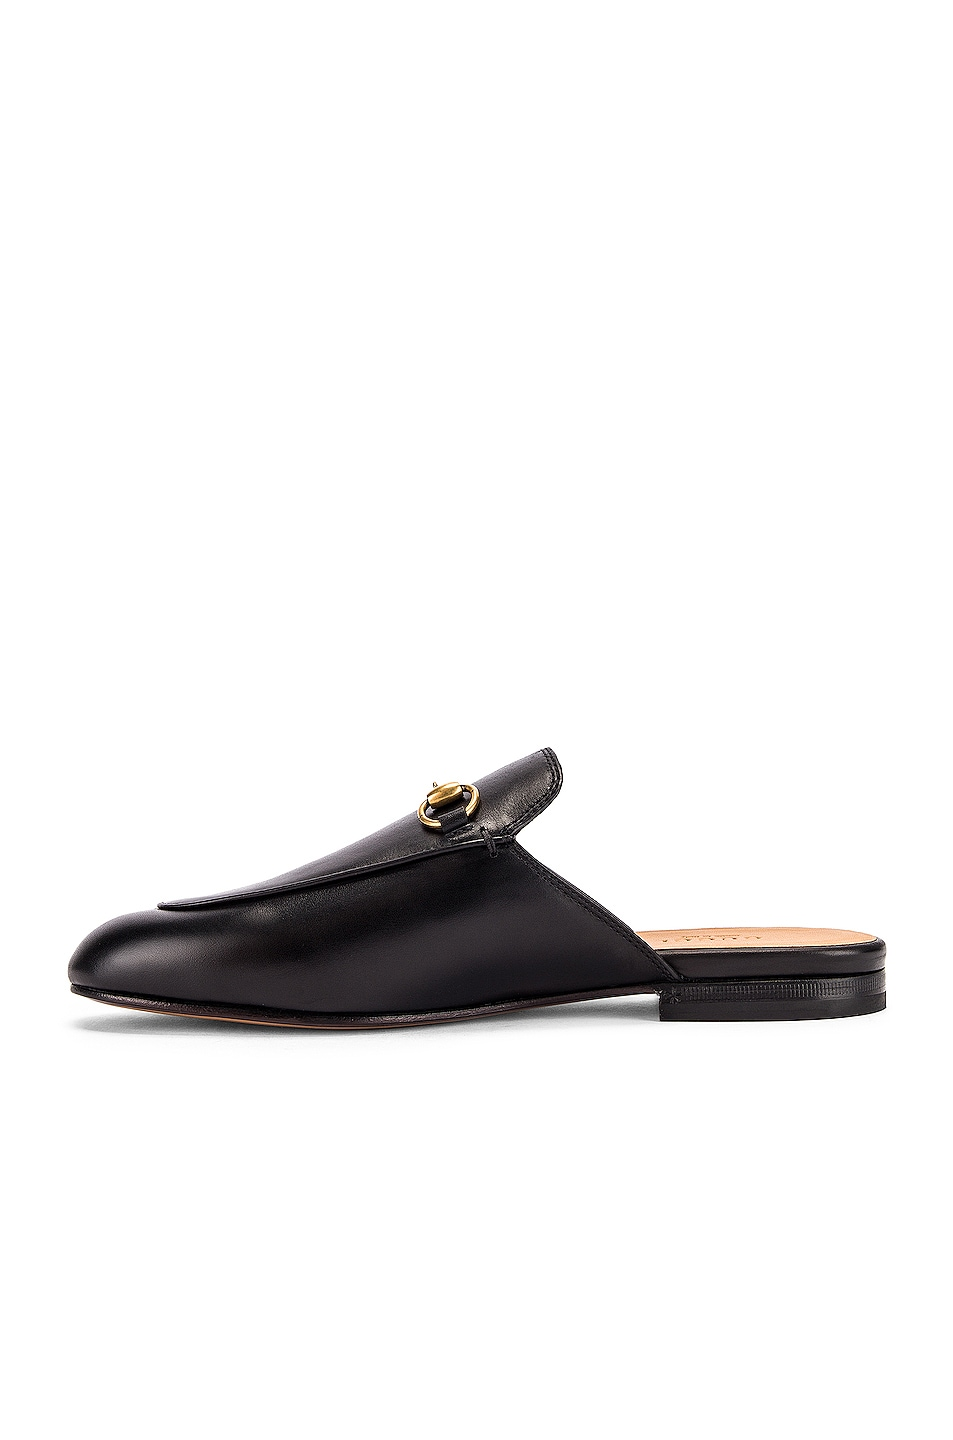 Image 5 of Gucci Princetown Slides in Black